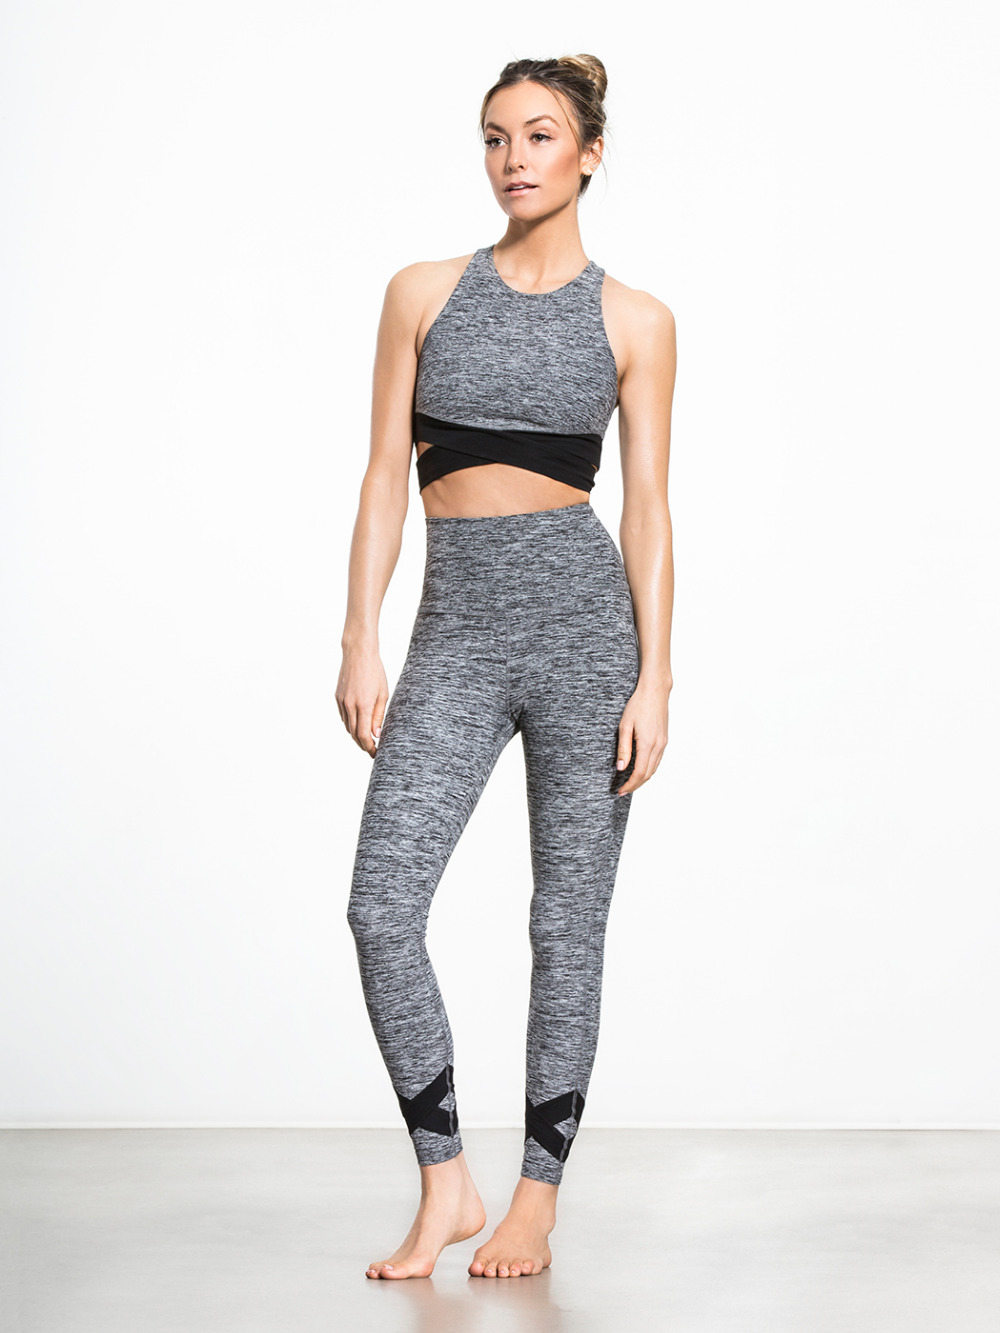 c4b5246892f0e Women's Sports Fitness Yoga Pants Functional Gym Running Workout Pant  running Ankle length Pants Quick drying Push Up Leggings-in Yoga Pants from  Sports ...